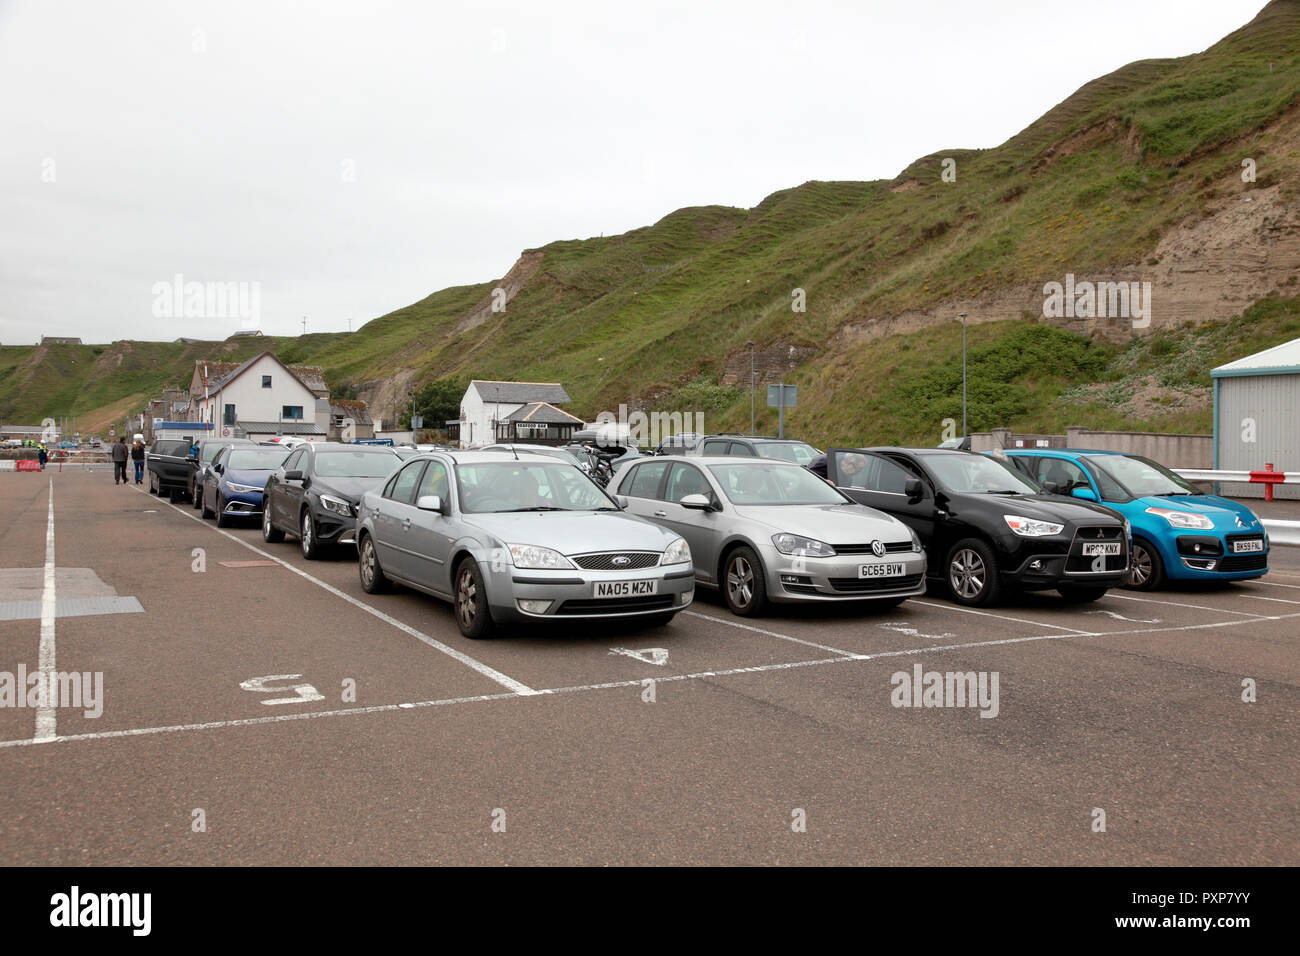 Cars waiting to board the NorthLink car ferry Hamnavoe at Scrabster for the journey to Stromness, Orkney Islands - Stock Image